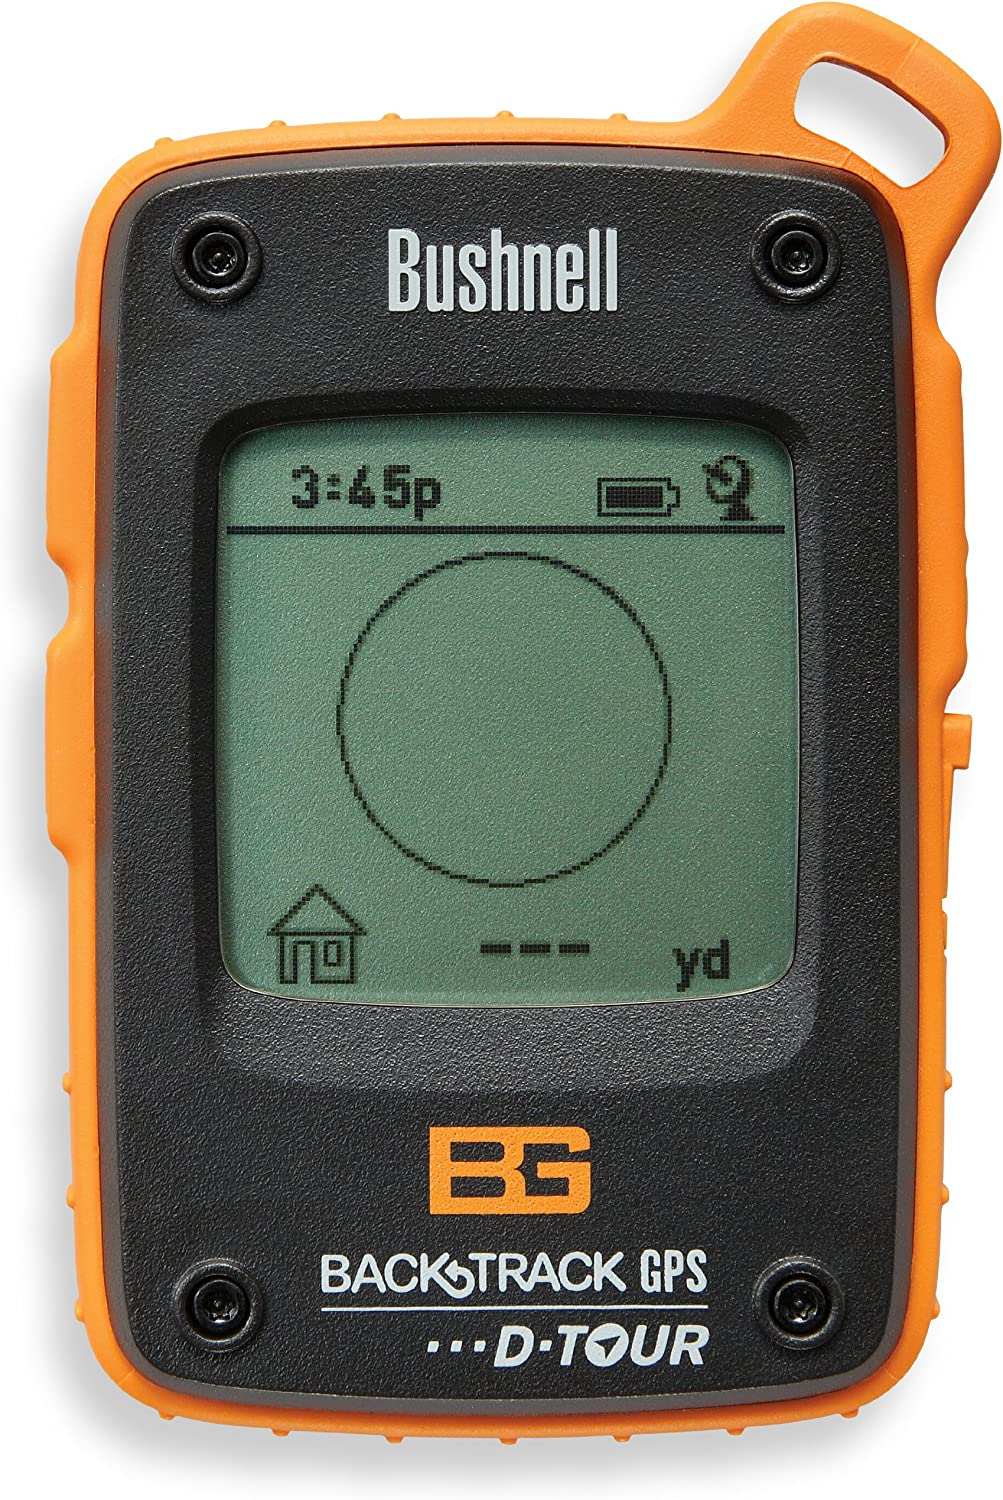 Bushnell D-Tour Personal GPS Tracking Device